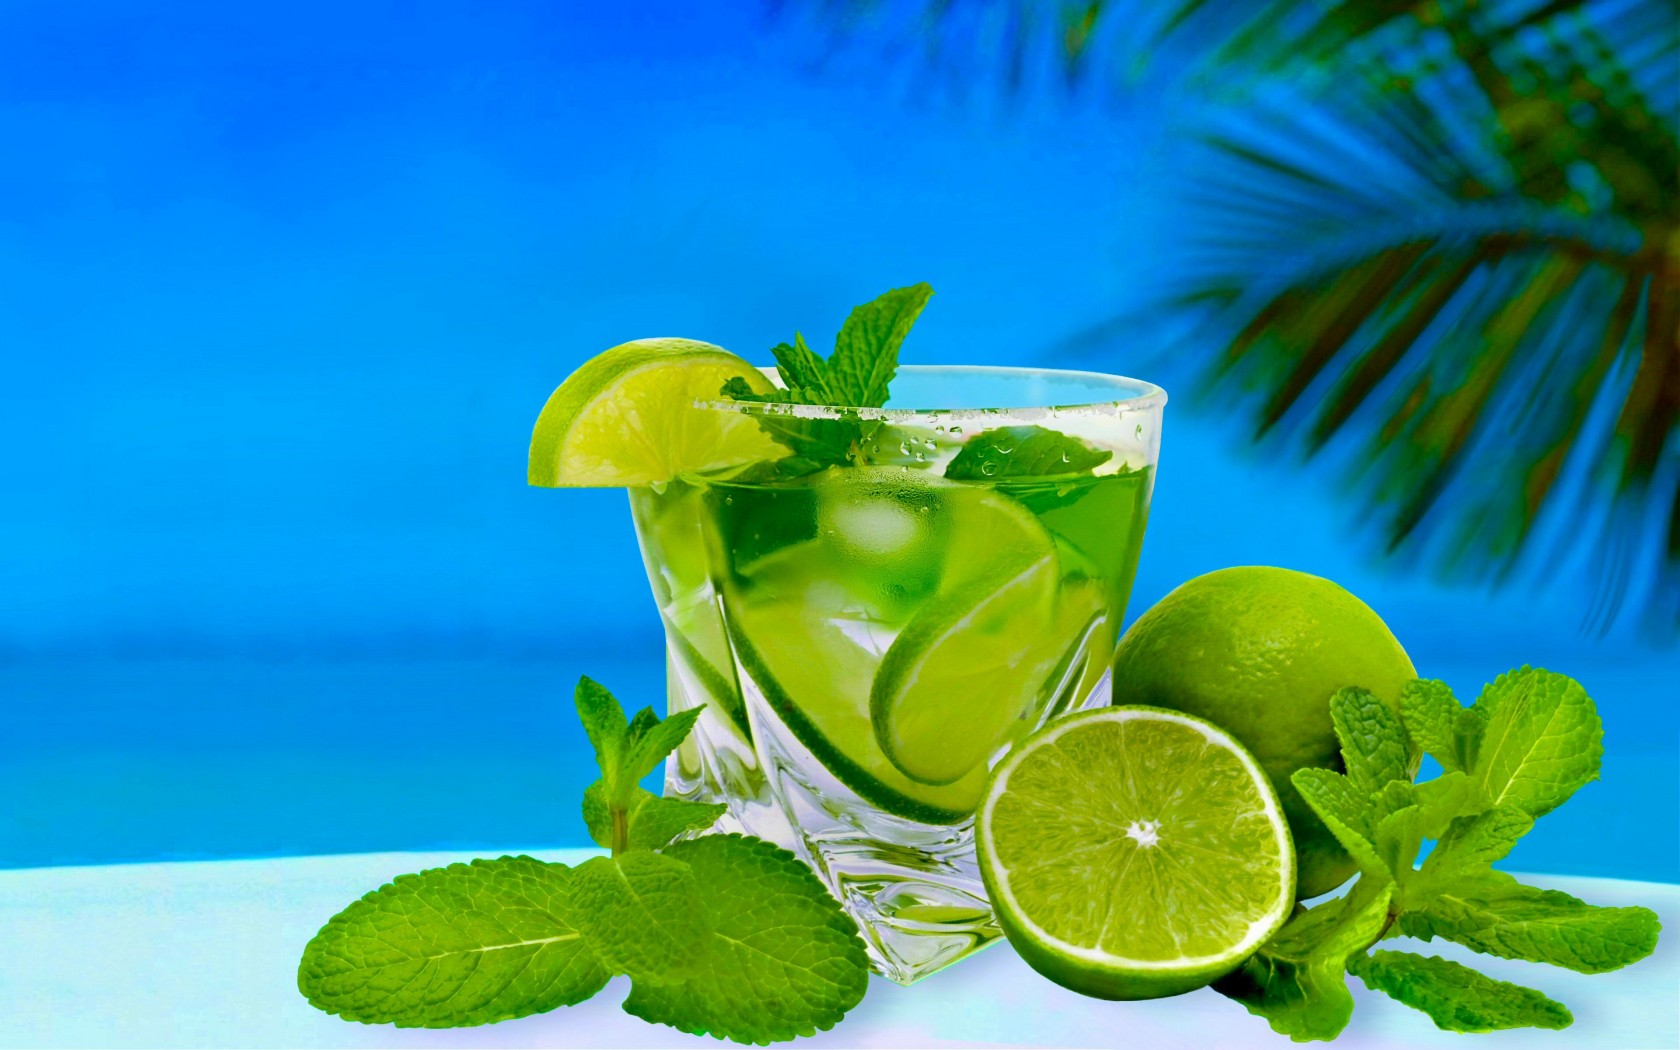 summer wallpapers mojito hd desktop wallpapers 4k hd. Black Bedroom Furniture Sets. Home Design Ideas